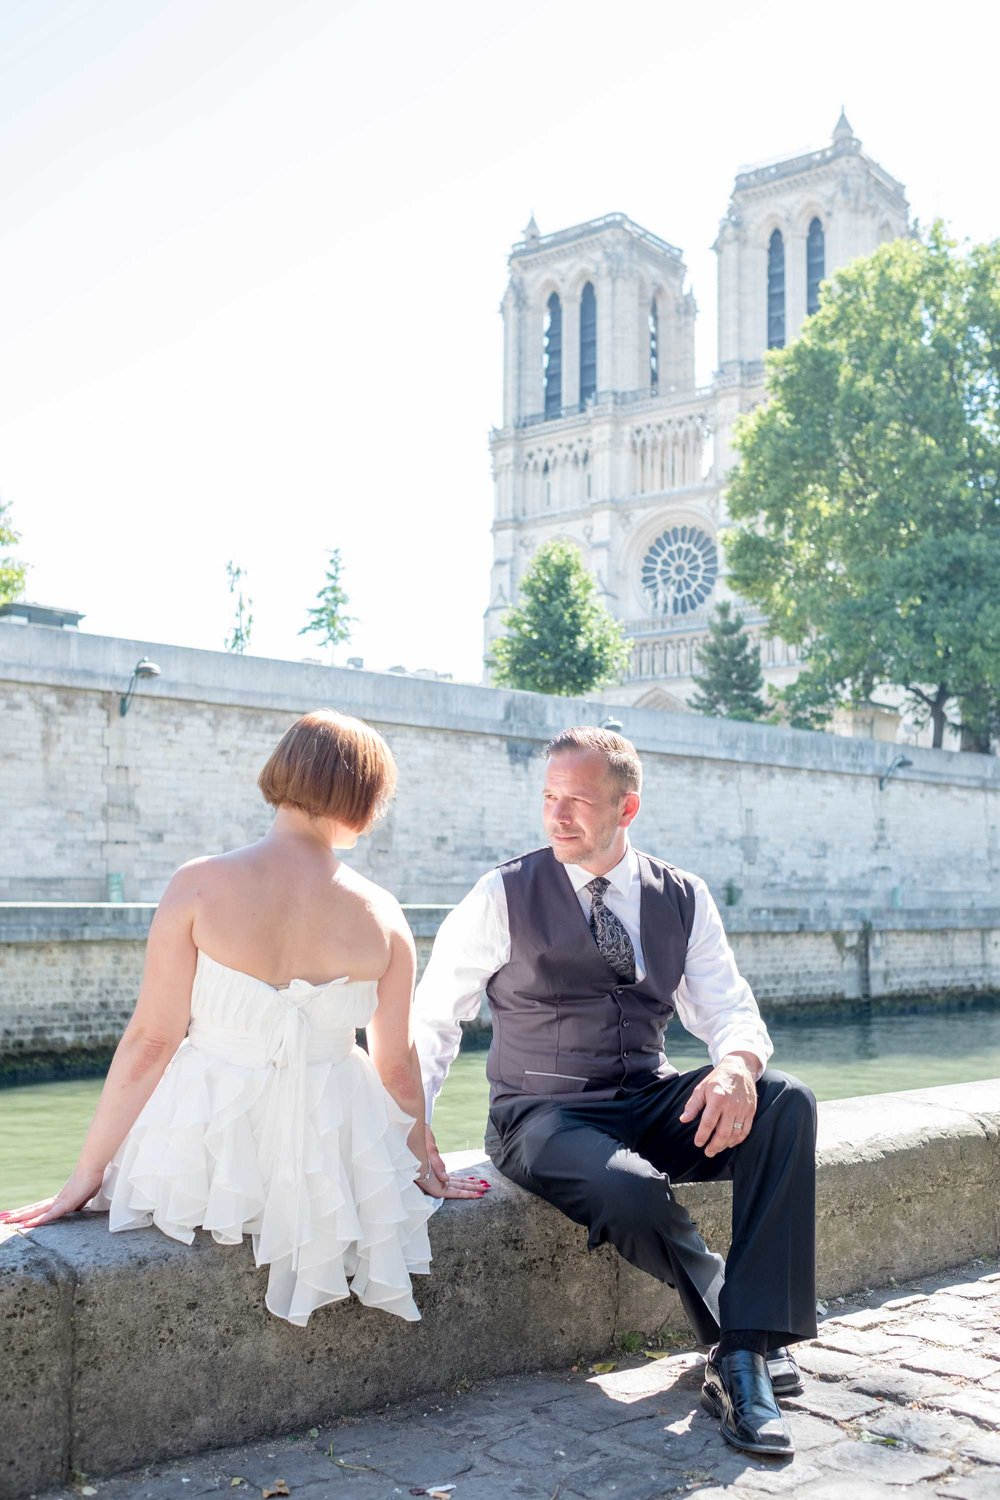 andrea & bill - I had the good fortune to photograph this spellbinding couple from Canada on a warm, sunny Paris day. We explored three areas of the city, starting at the Eiffel Tower, then making our way to the Louvre and finally, Notre Dame. Andrea had a change of outfits and brought along some great props that really lent a special something to the images. It was such a pleasure photographing this wonderful couple!See more images here